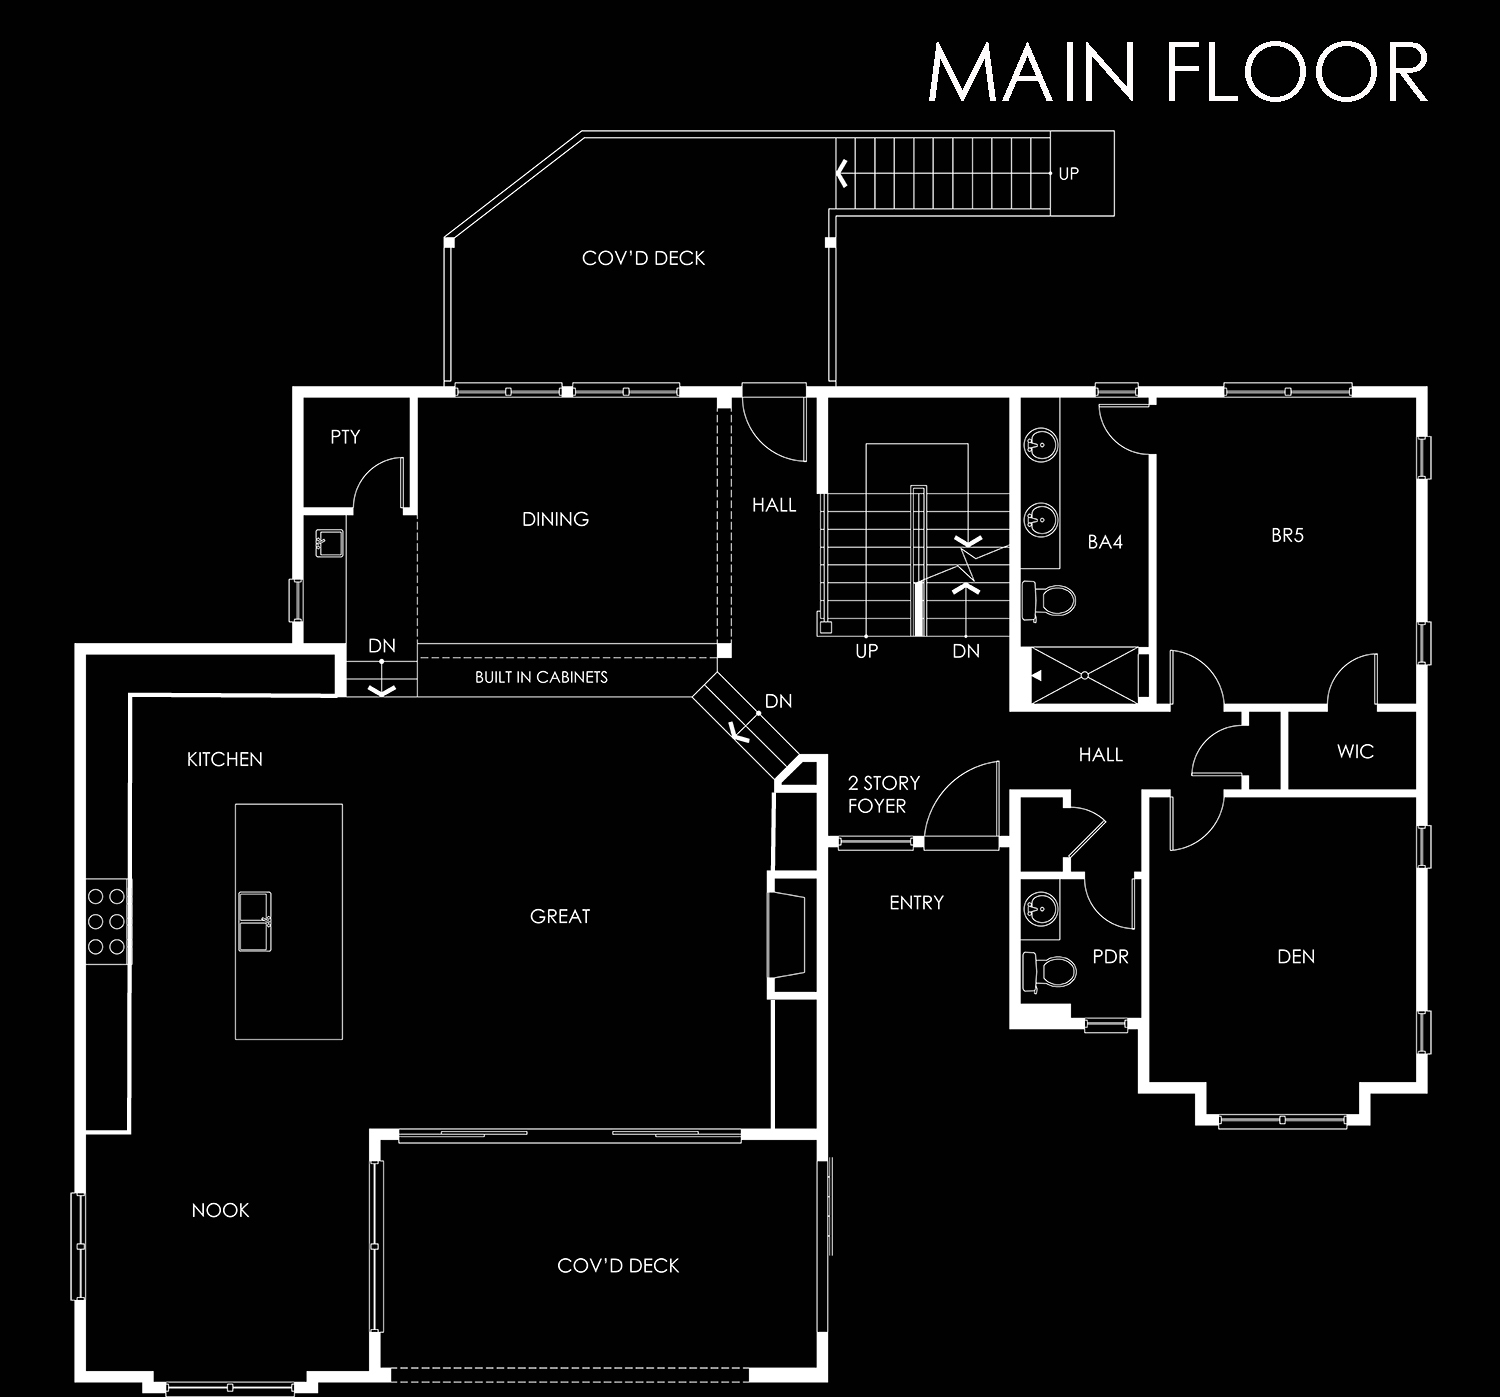 99 - 10042 NE 13th st - Lot 2 - Main Floor2.jpg